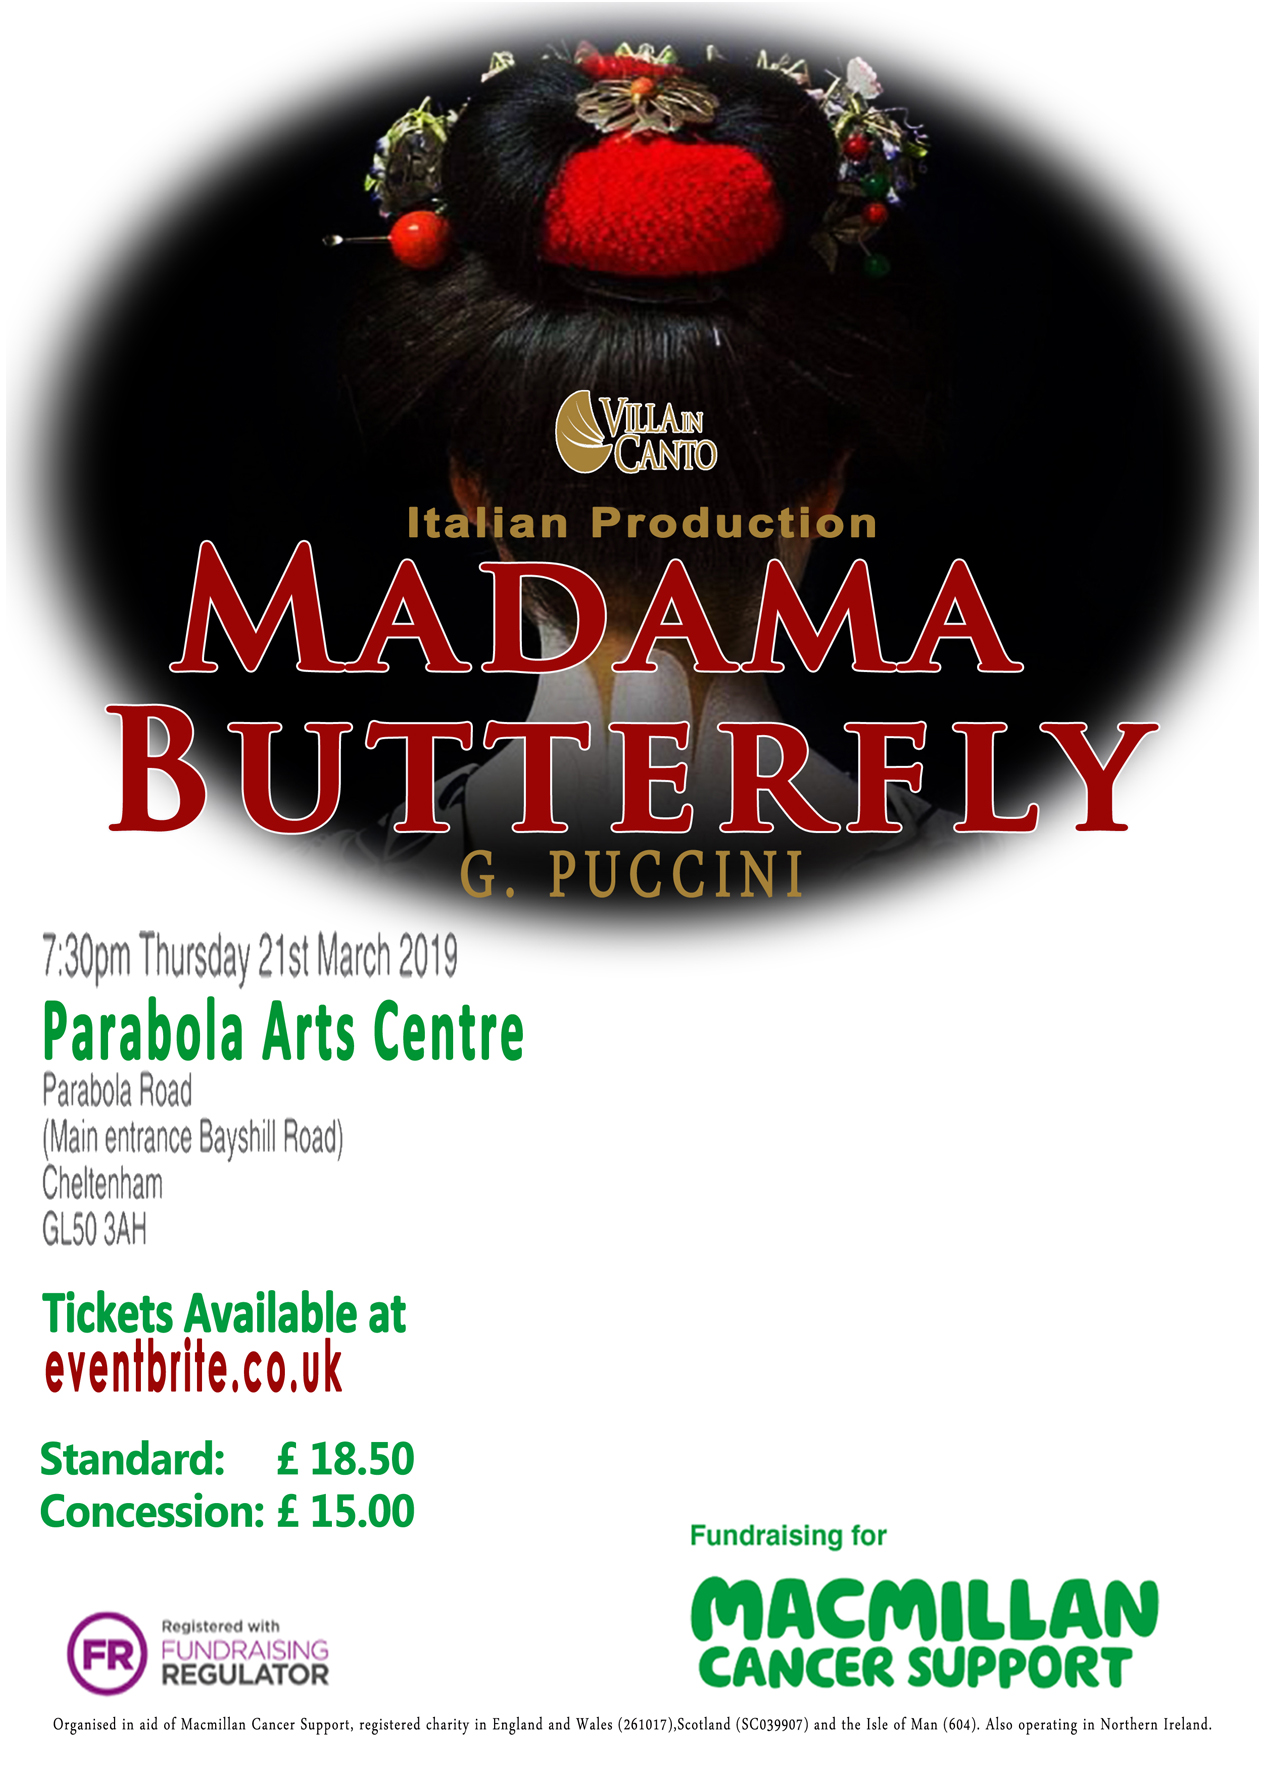 Madama Butterfly, Italian production in Aid of Macmillan Cancer Support